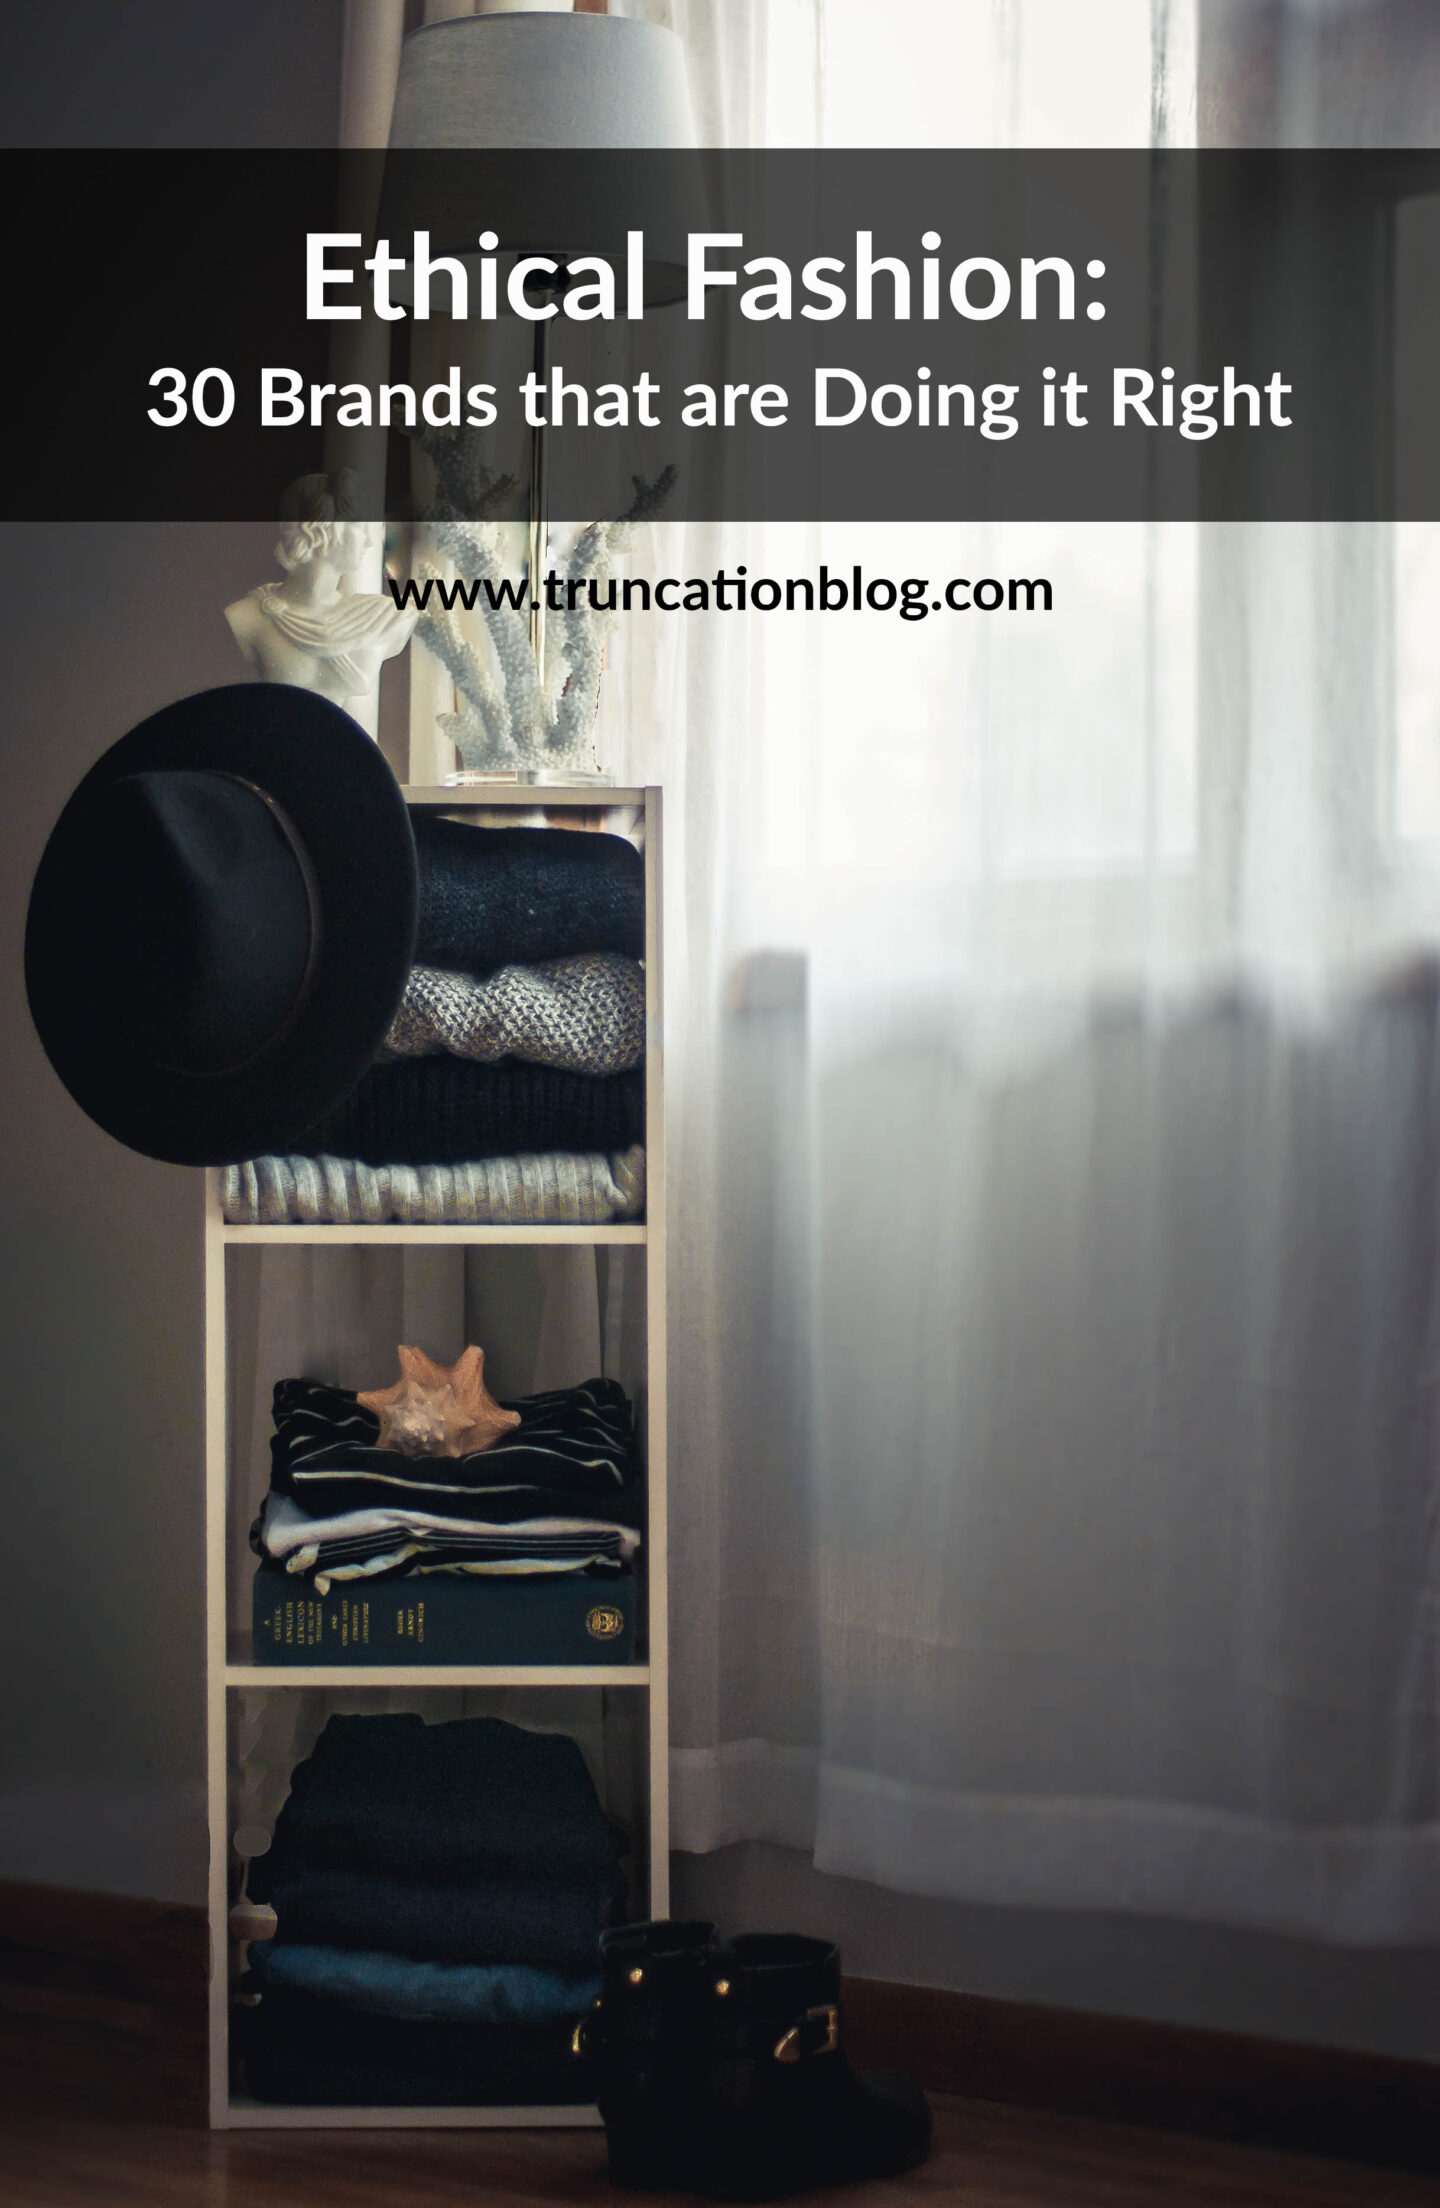 Karin Rambo of truncationblog.com shares her list of 30 brands that are doing ethical fashion right.